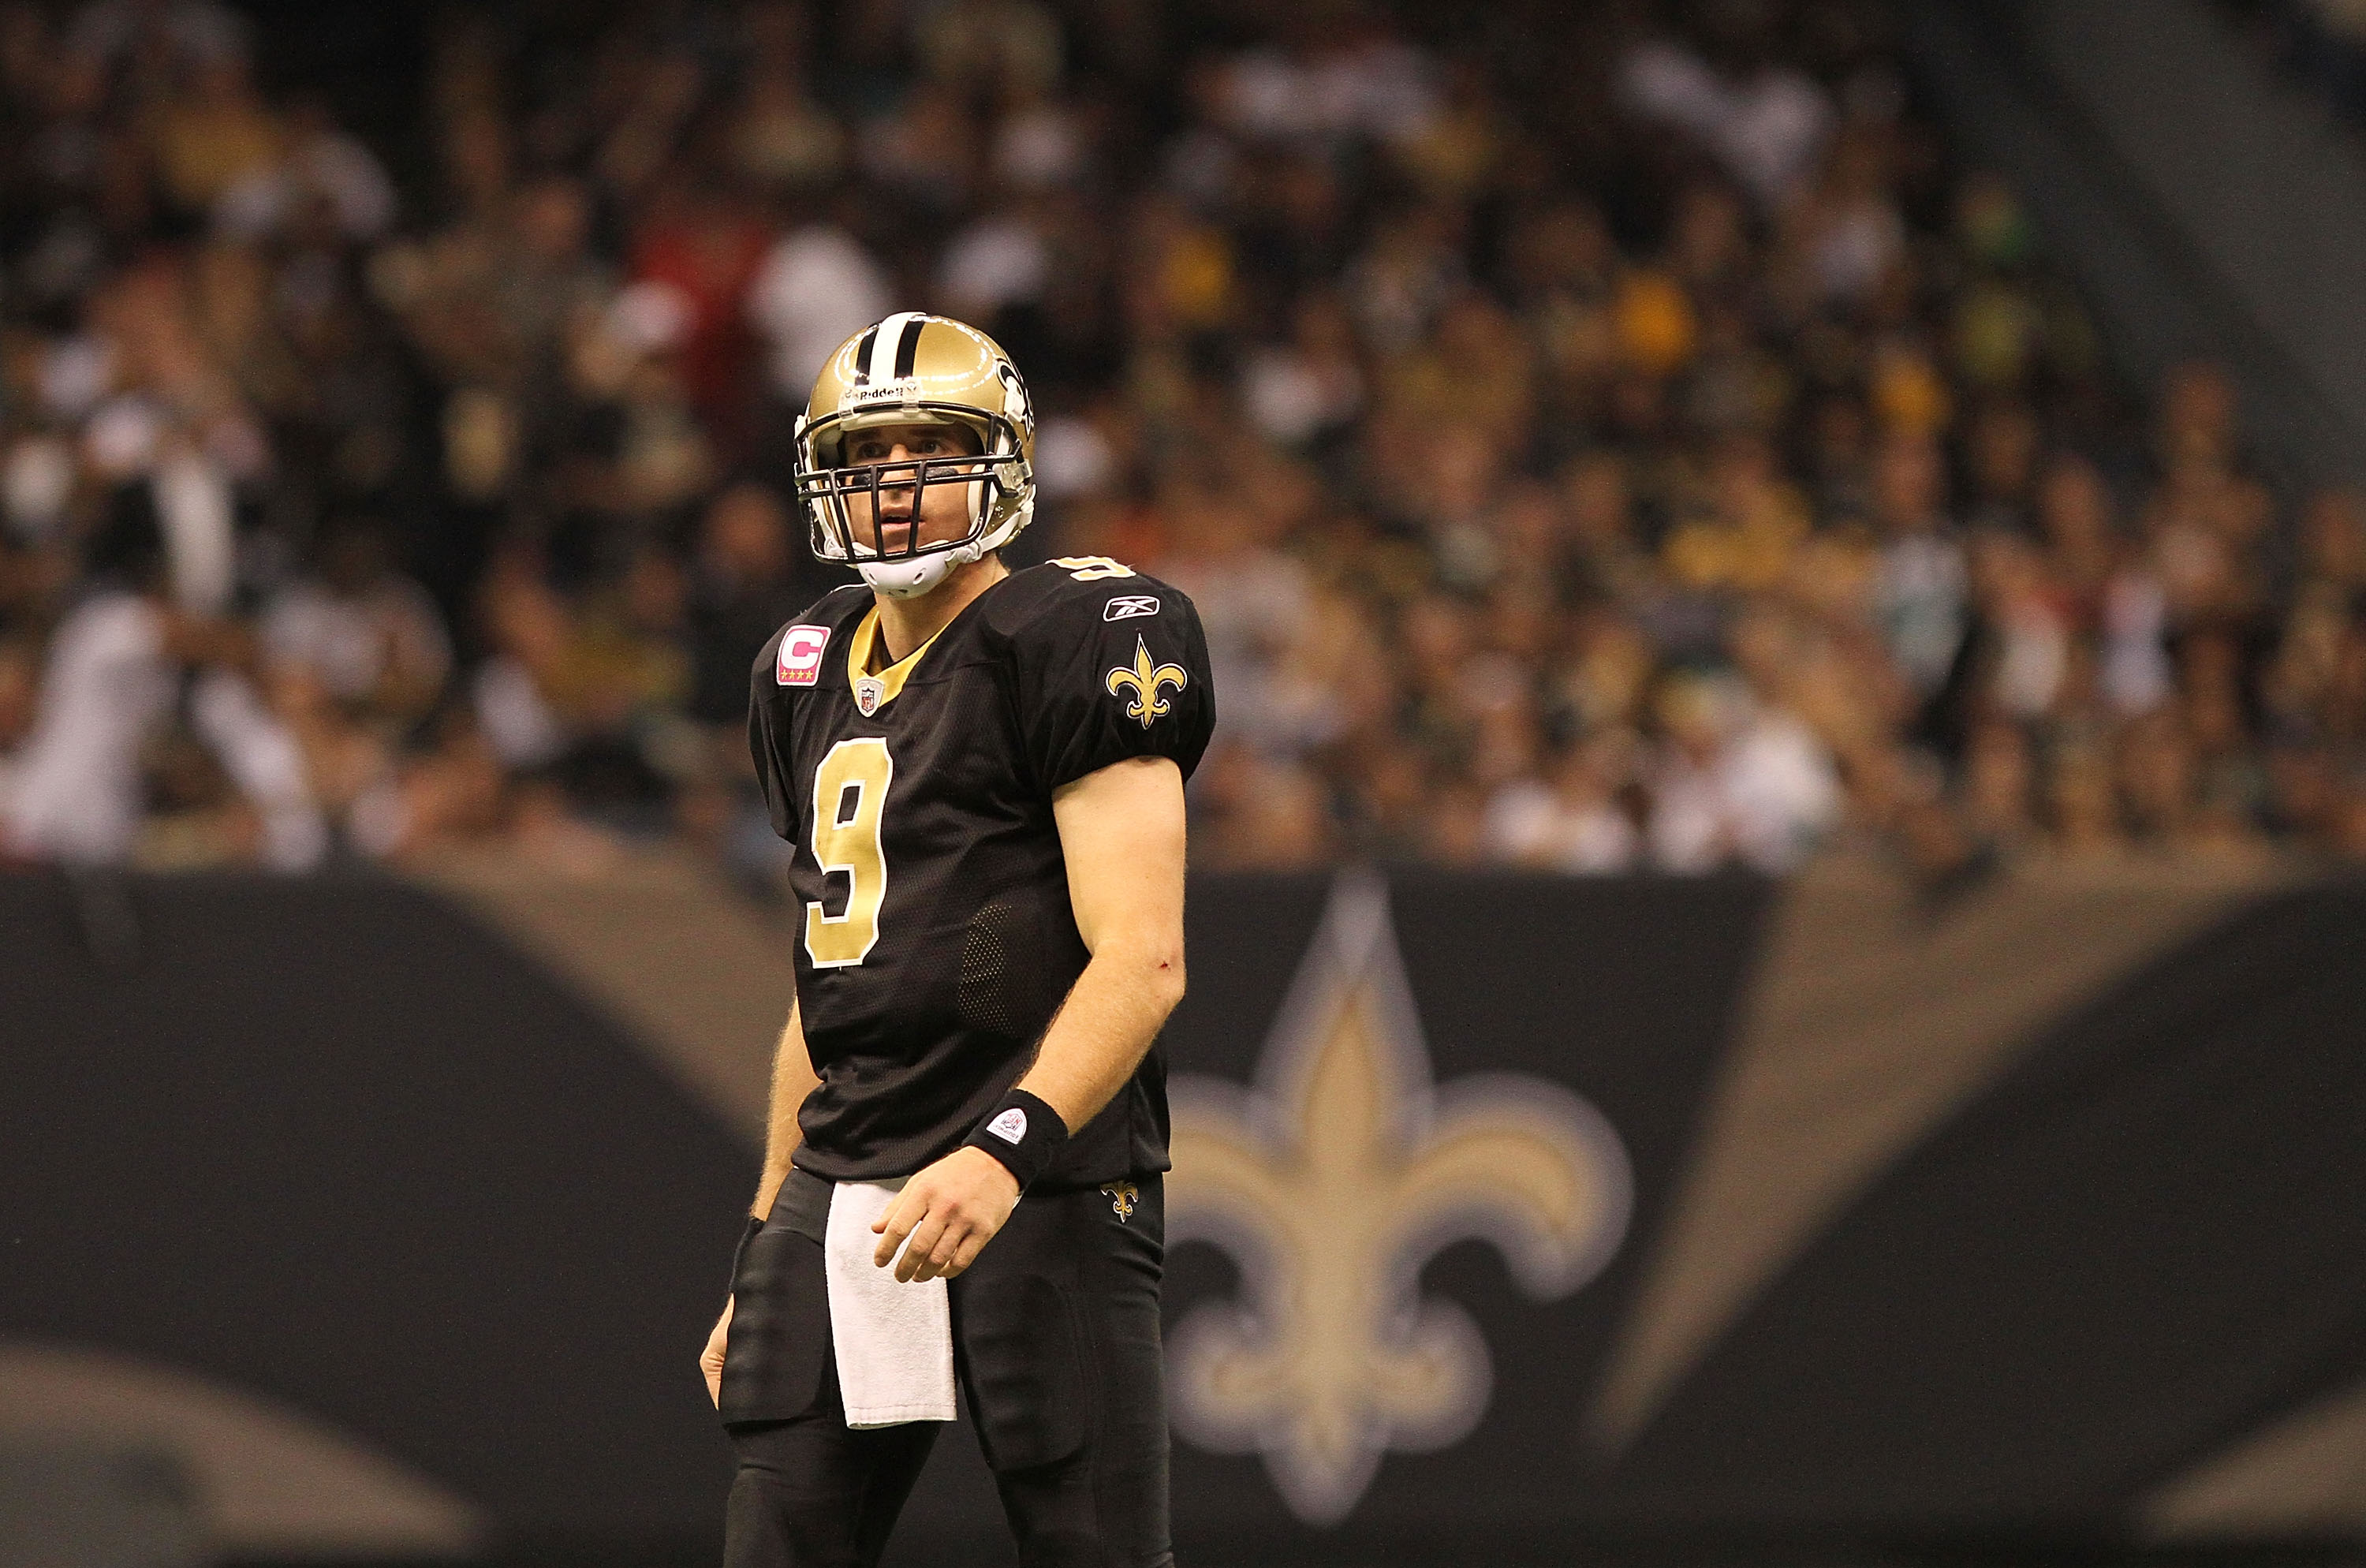 NEW ORLEANS, LA - OCTOBER 31: Drew Brees #9 of the New Orleans Saints looks on during the game against the Pittsburgh Steelers at the Louisiana Superdome on October 31, 2010 in New Orleans, Louisiana. (Photo by Matthew Sharpe/Getty Images)